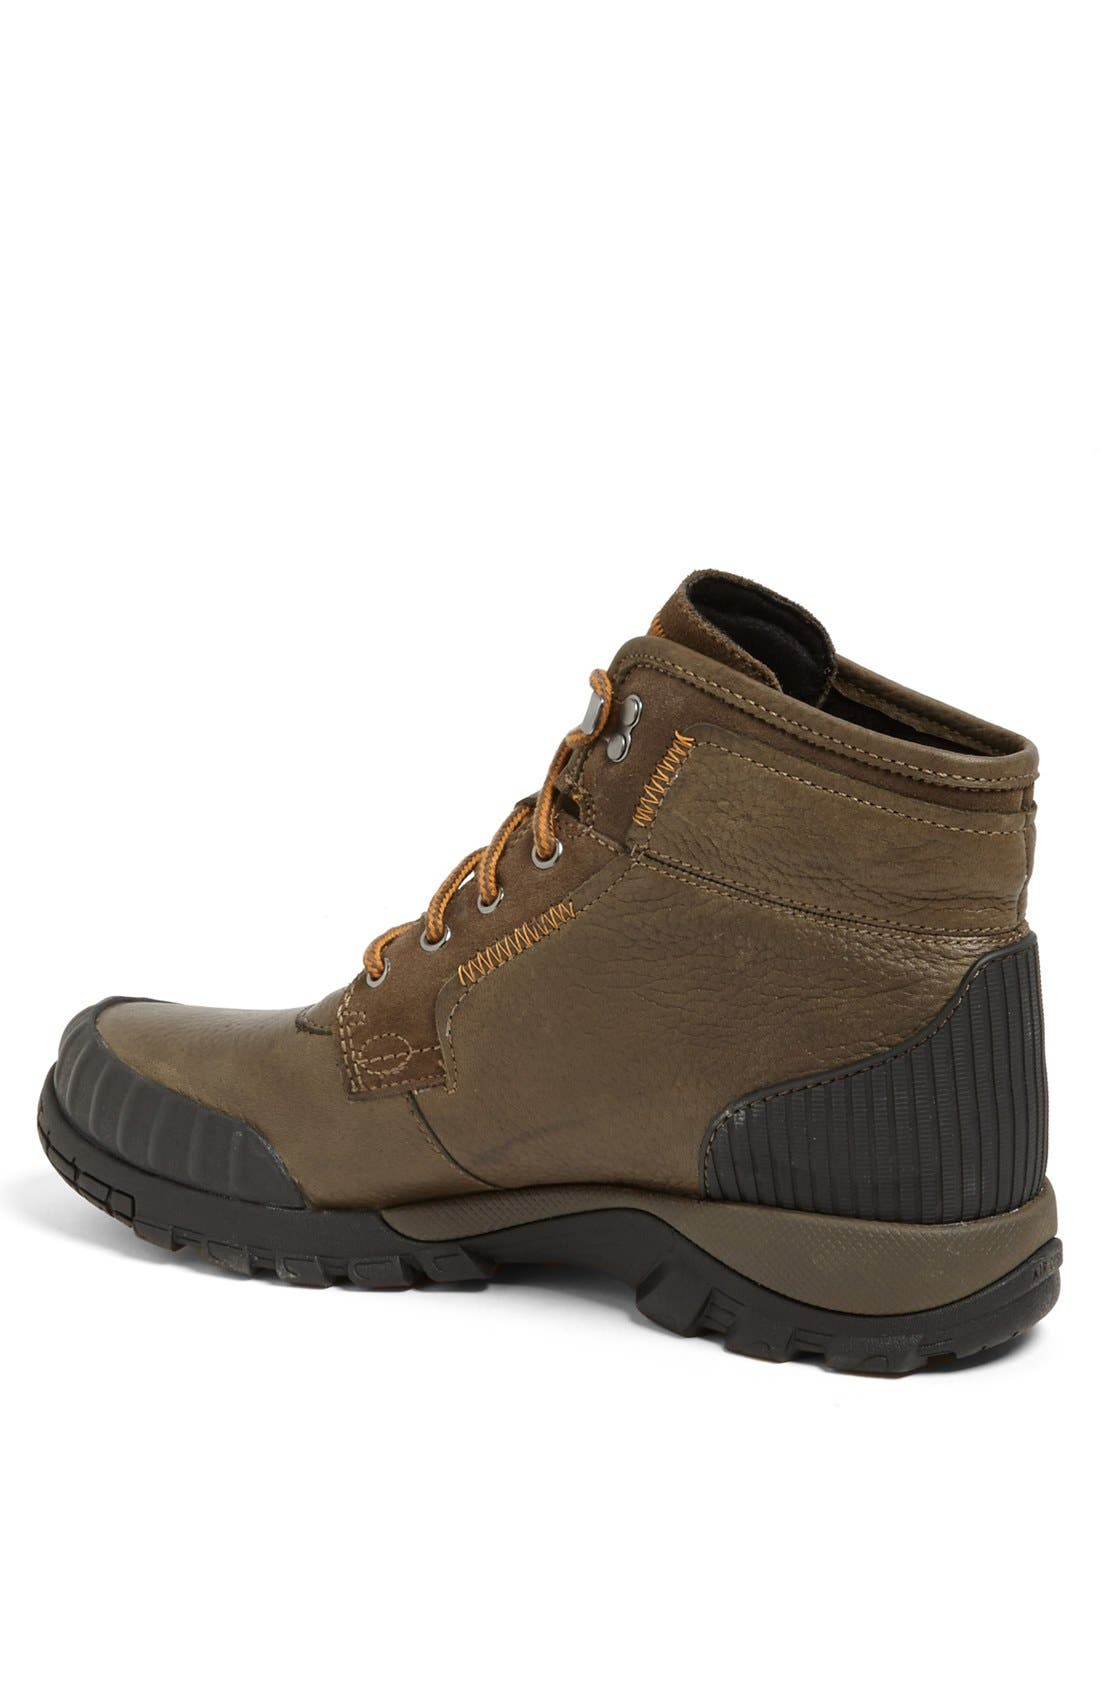 'Himavat' Waterproof Chukka Boot,                             Alternate thumbnail 2, color,                             200